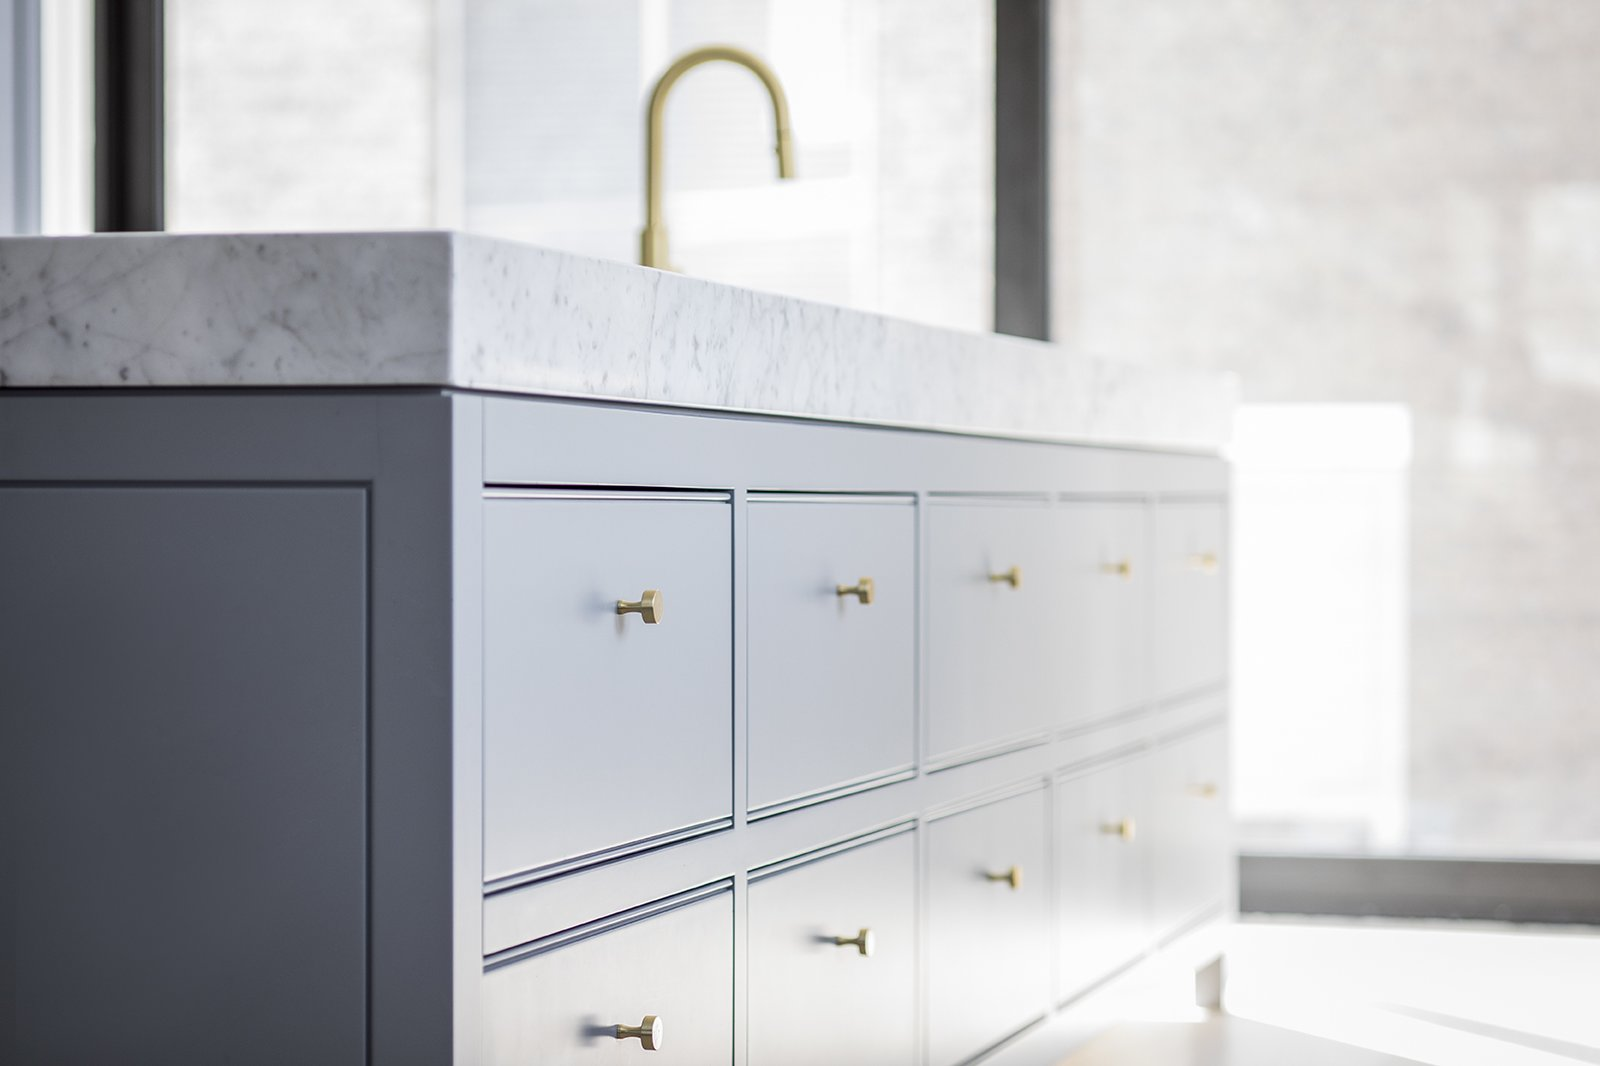 Kitchen, Marble Counter, Colorful Cabinet, Light Hardwood Floor, and Undermount Sink  Hampstead House by RobitailleCurtis